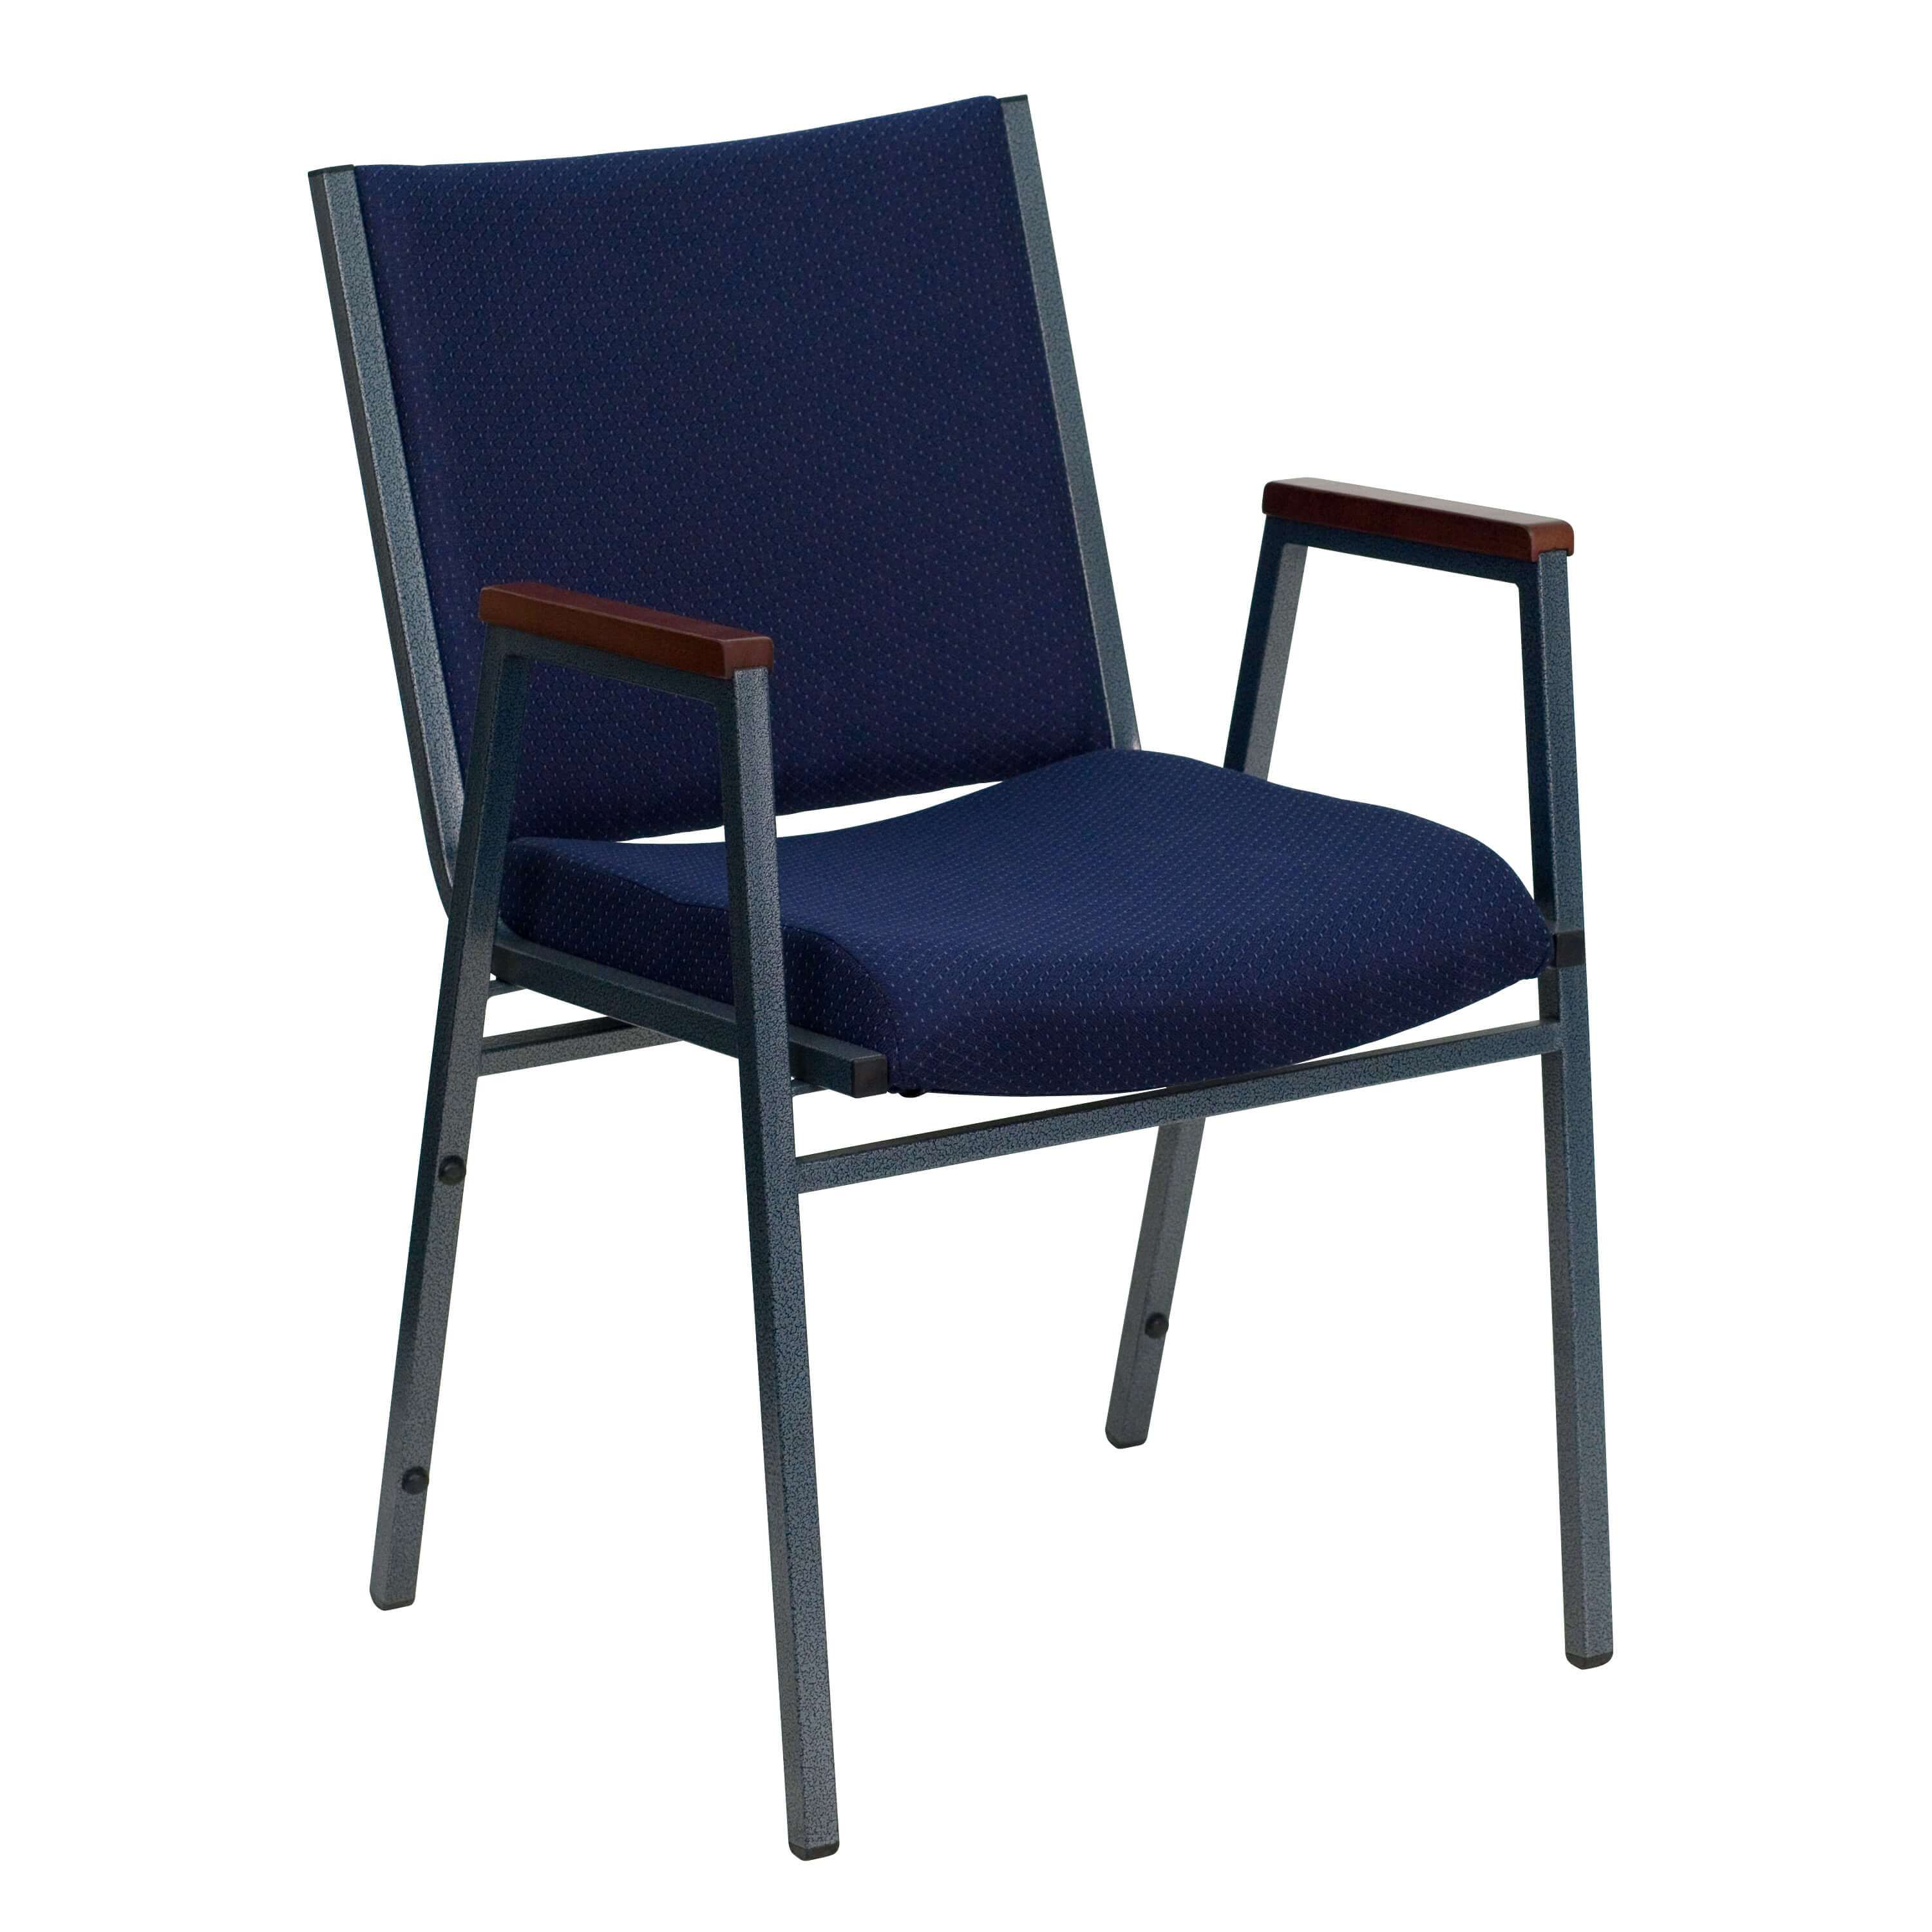 Stackable chairs CUB XU 60154 NVY GG FLA